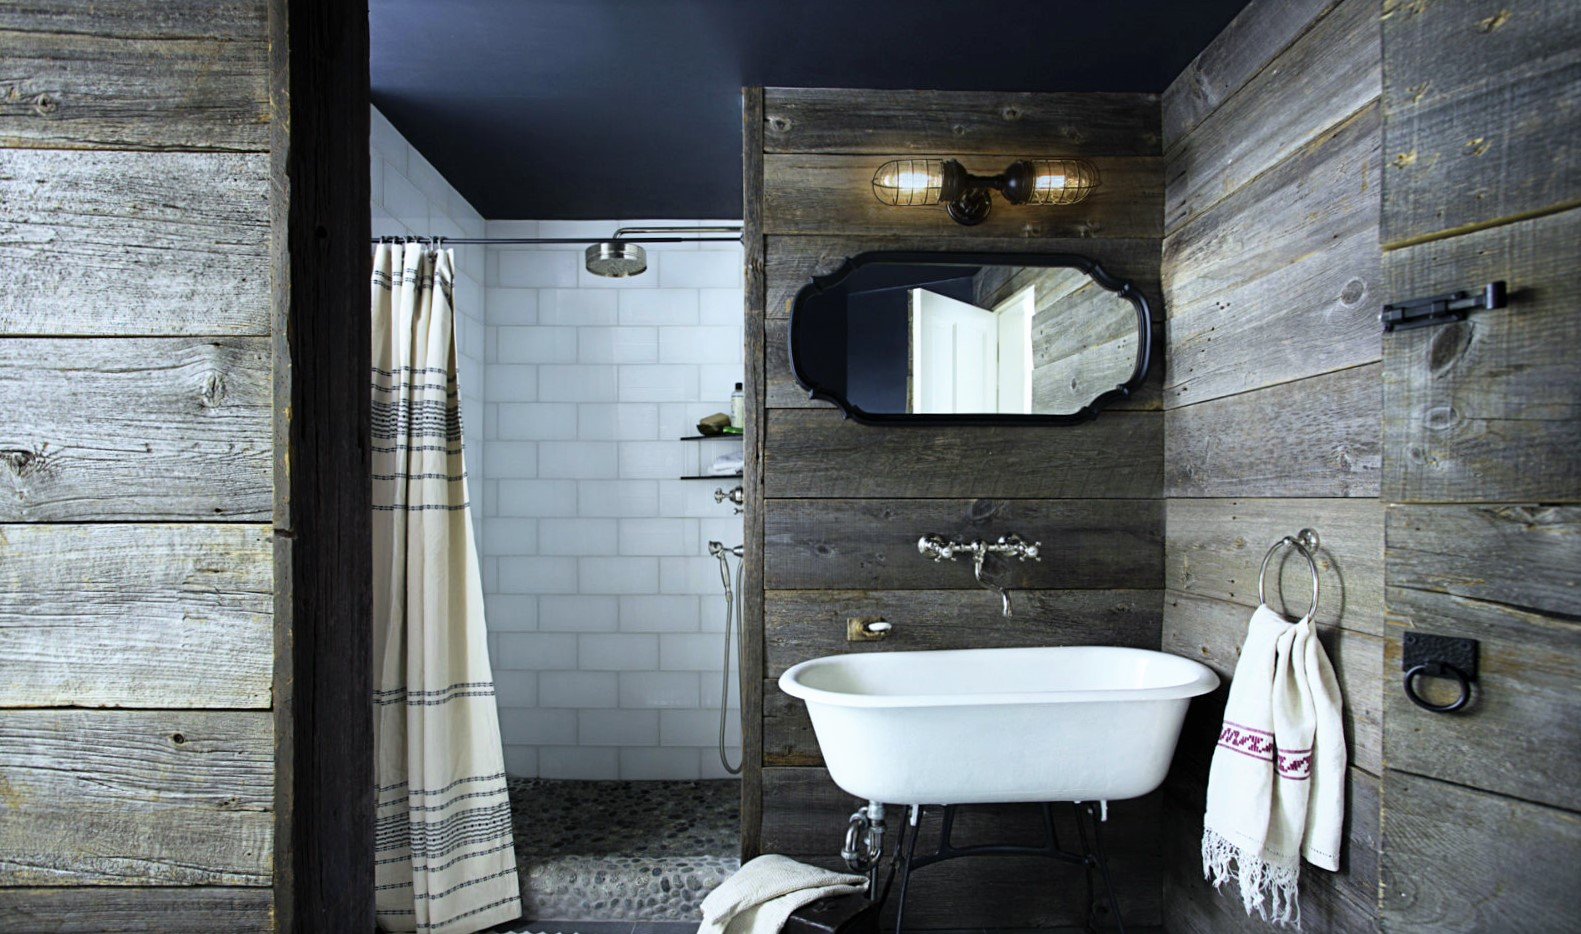 Bathroom Design Ideas: 6 Tips To Make Your Bathroom Renovation Look Amazing